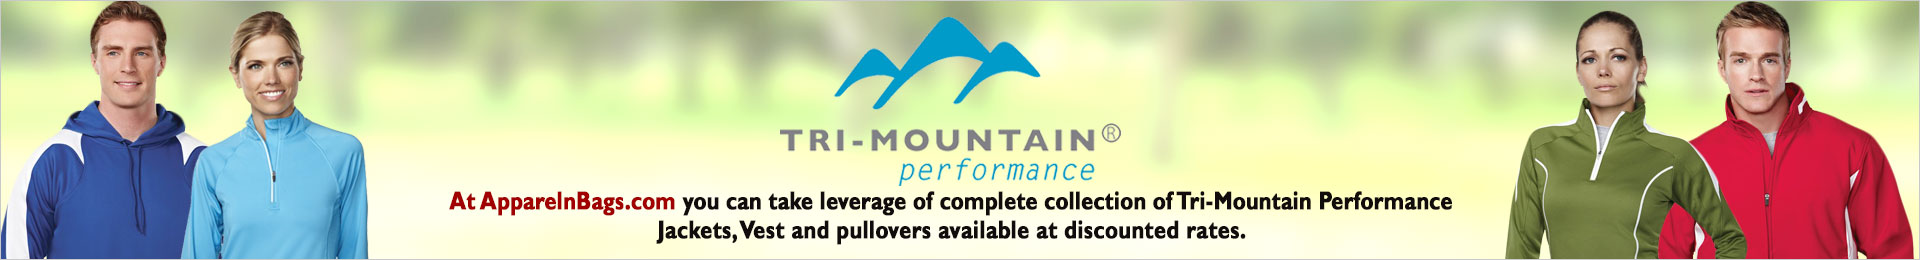 Tri-Mountain Performance Jacket, Vest And Pullovers